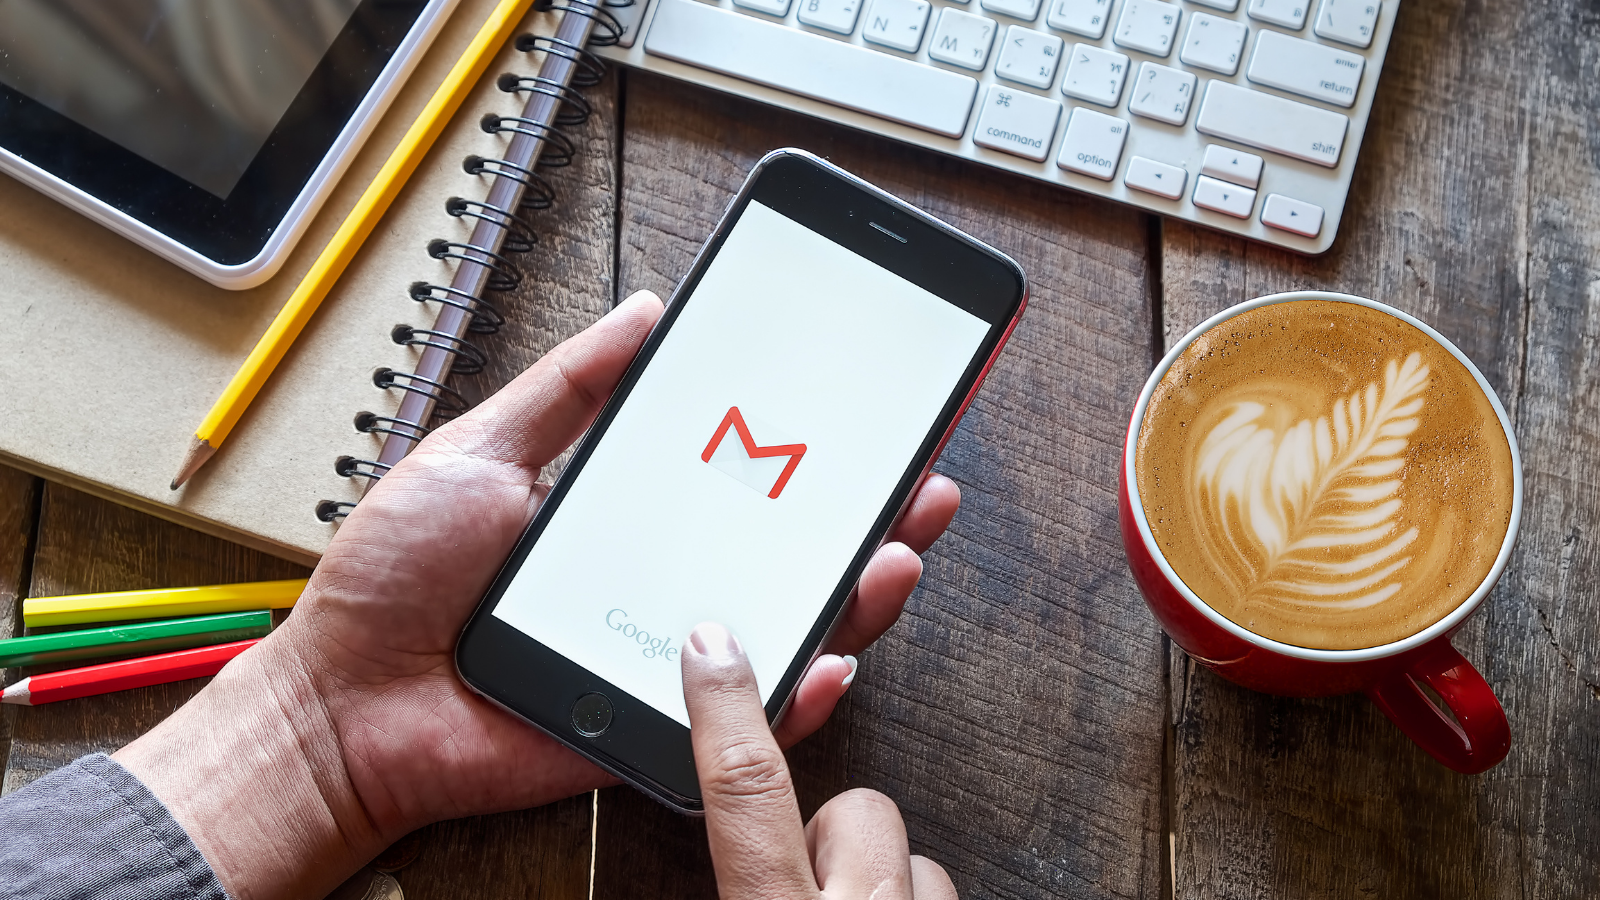 4 simple emails you should send every week